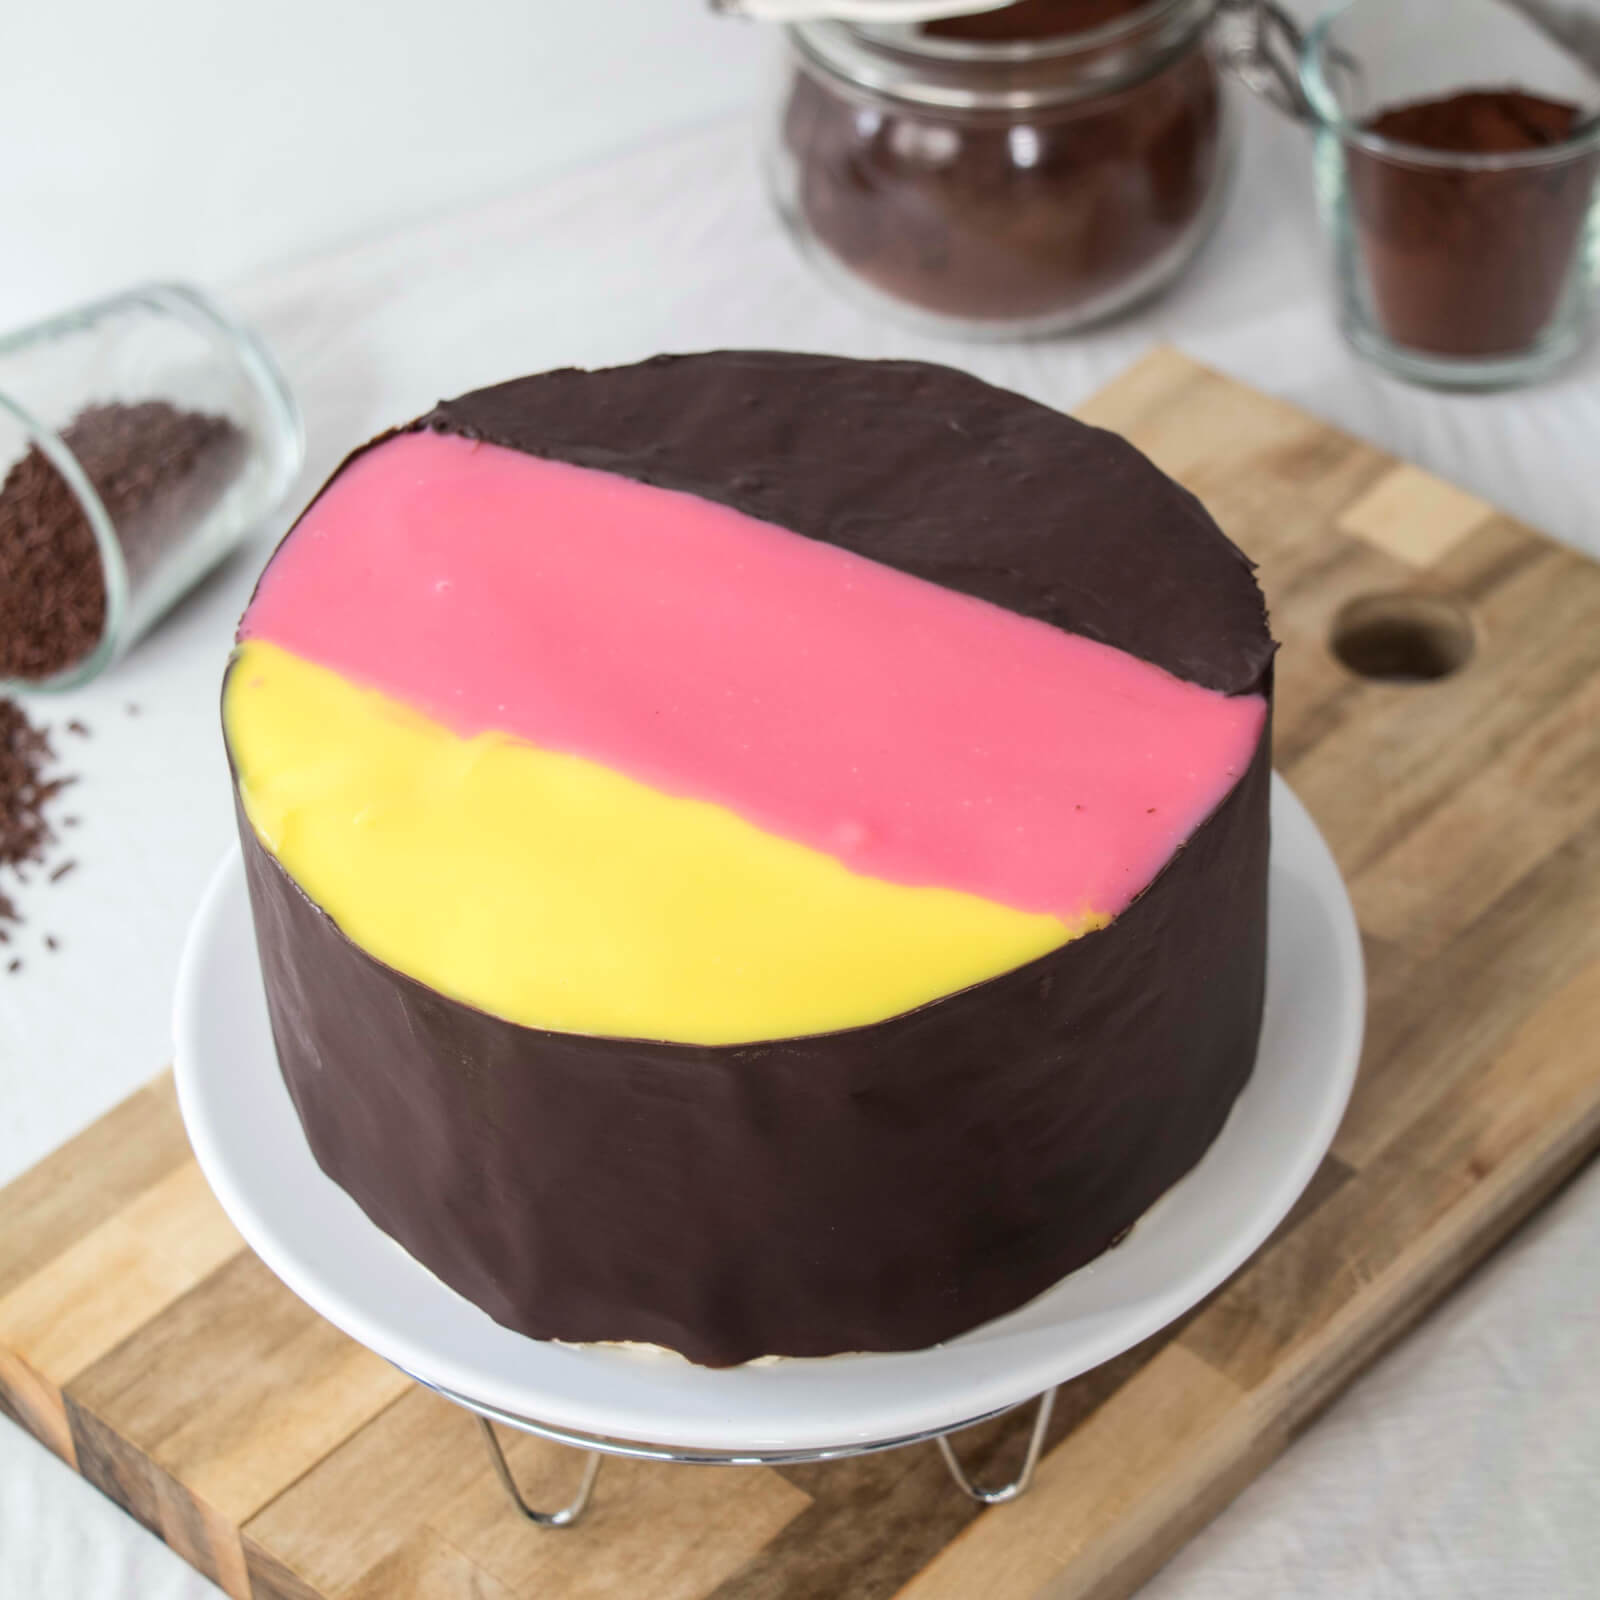 Danube-Wave-German-Flag-Cake-Donauwelle-Torte-Deutschland-Flagge (9)